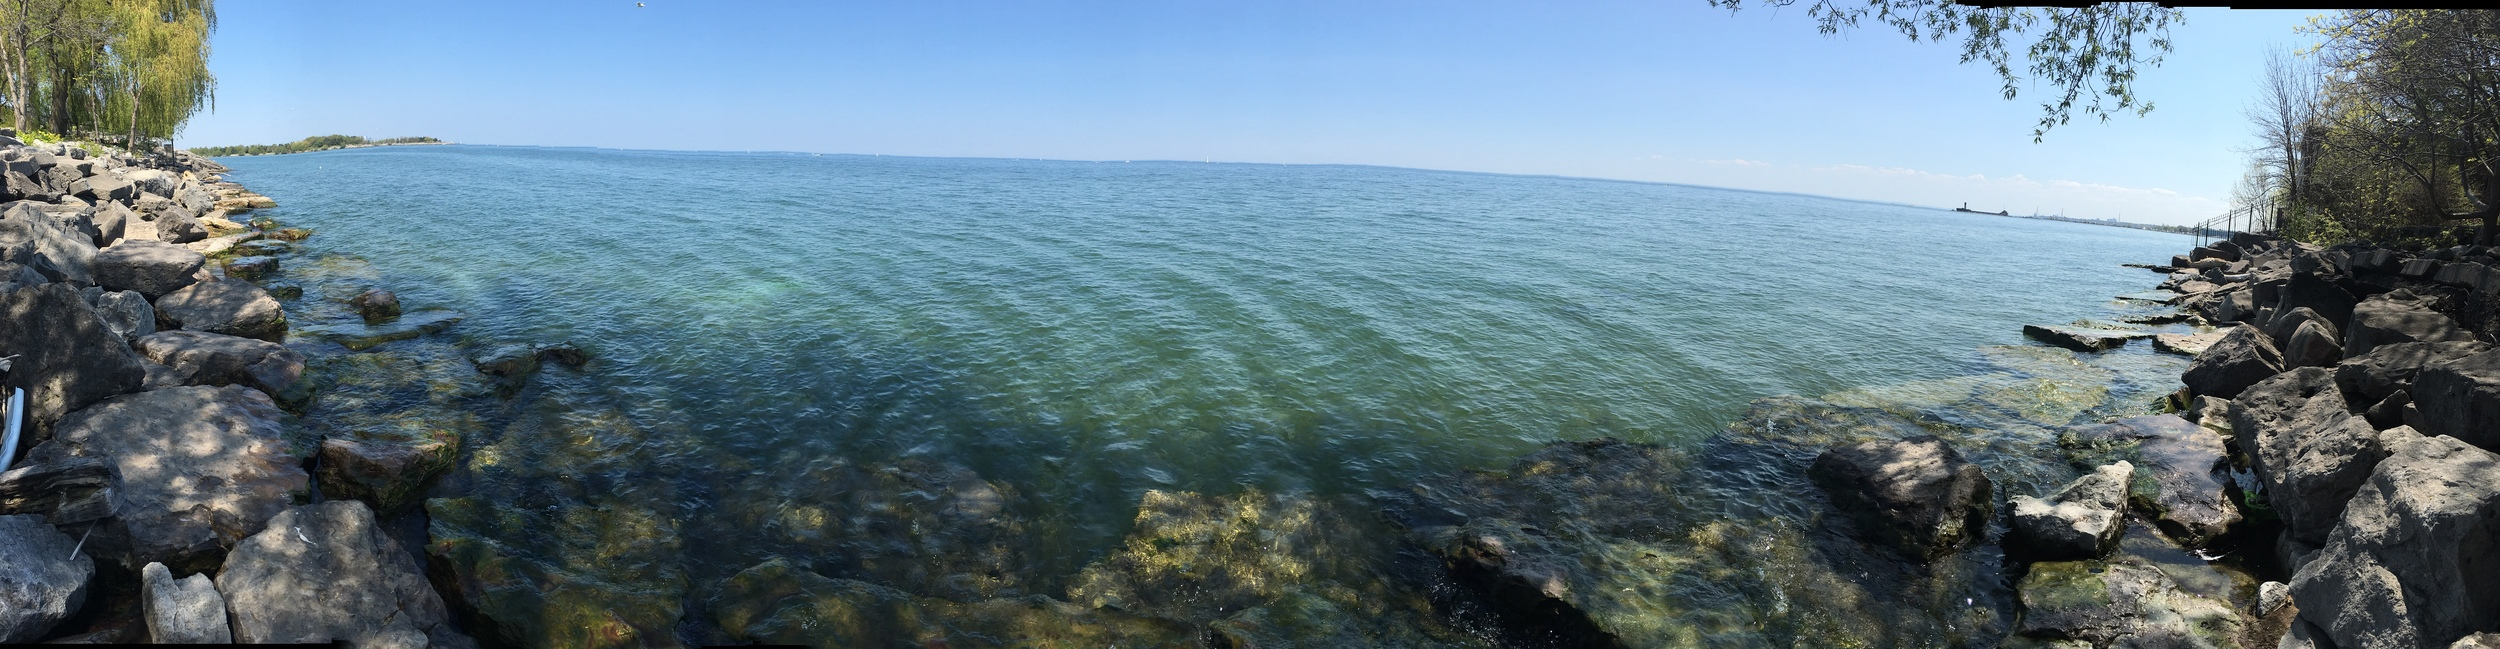 This, my friends, is Lake Ontario. Many mornings, my mom and I would grab maple lattes (how original, I know) and walk around the Lake, reminiscing about old memories in Canada.